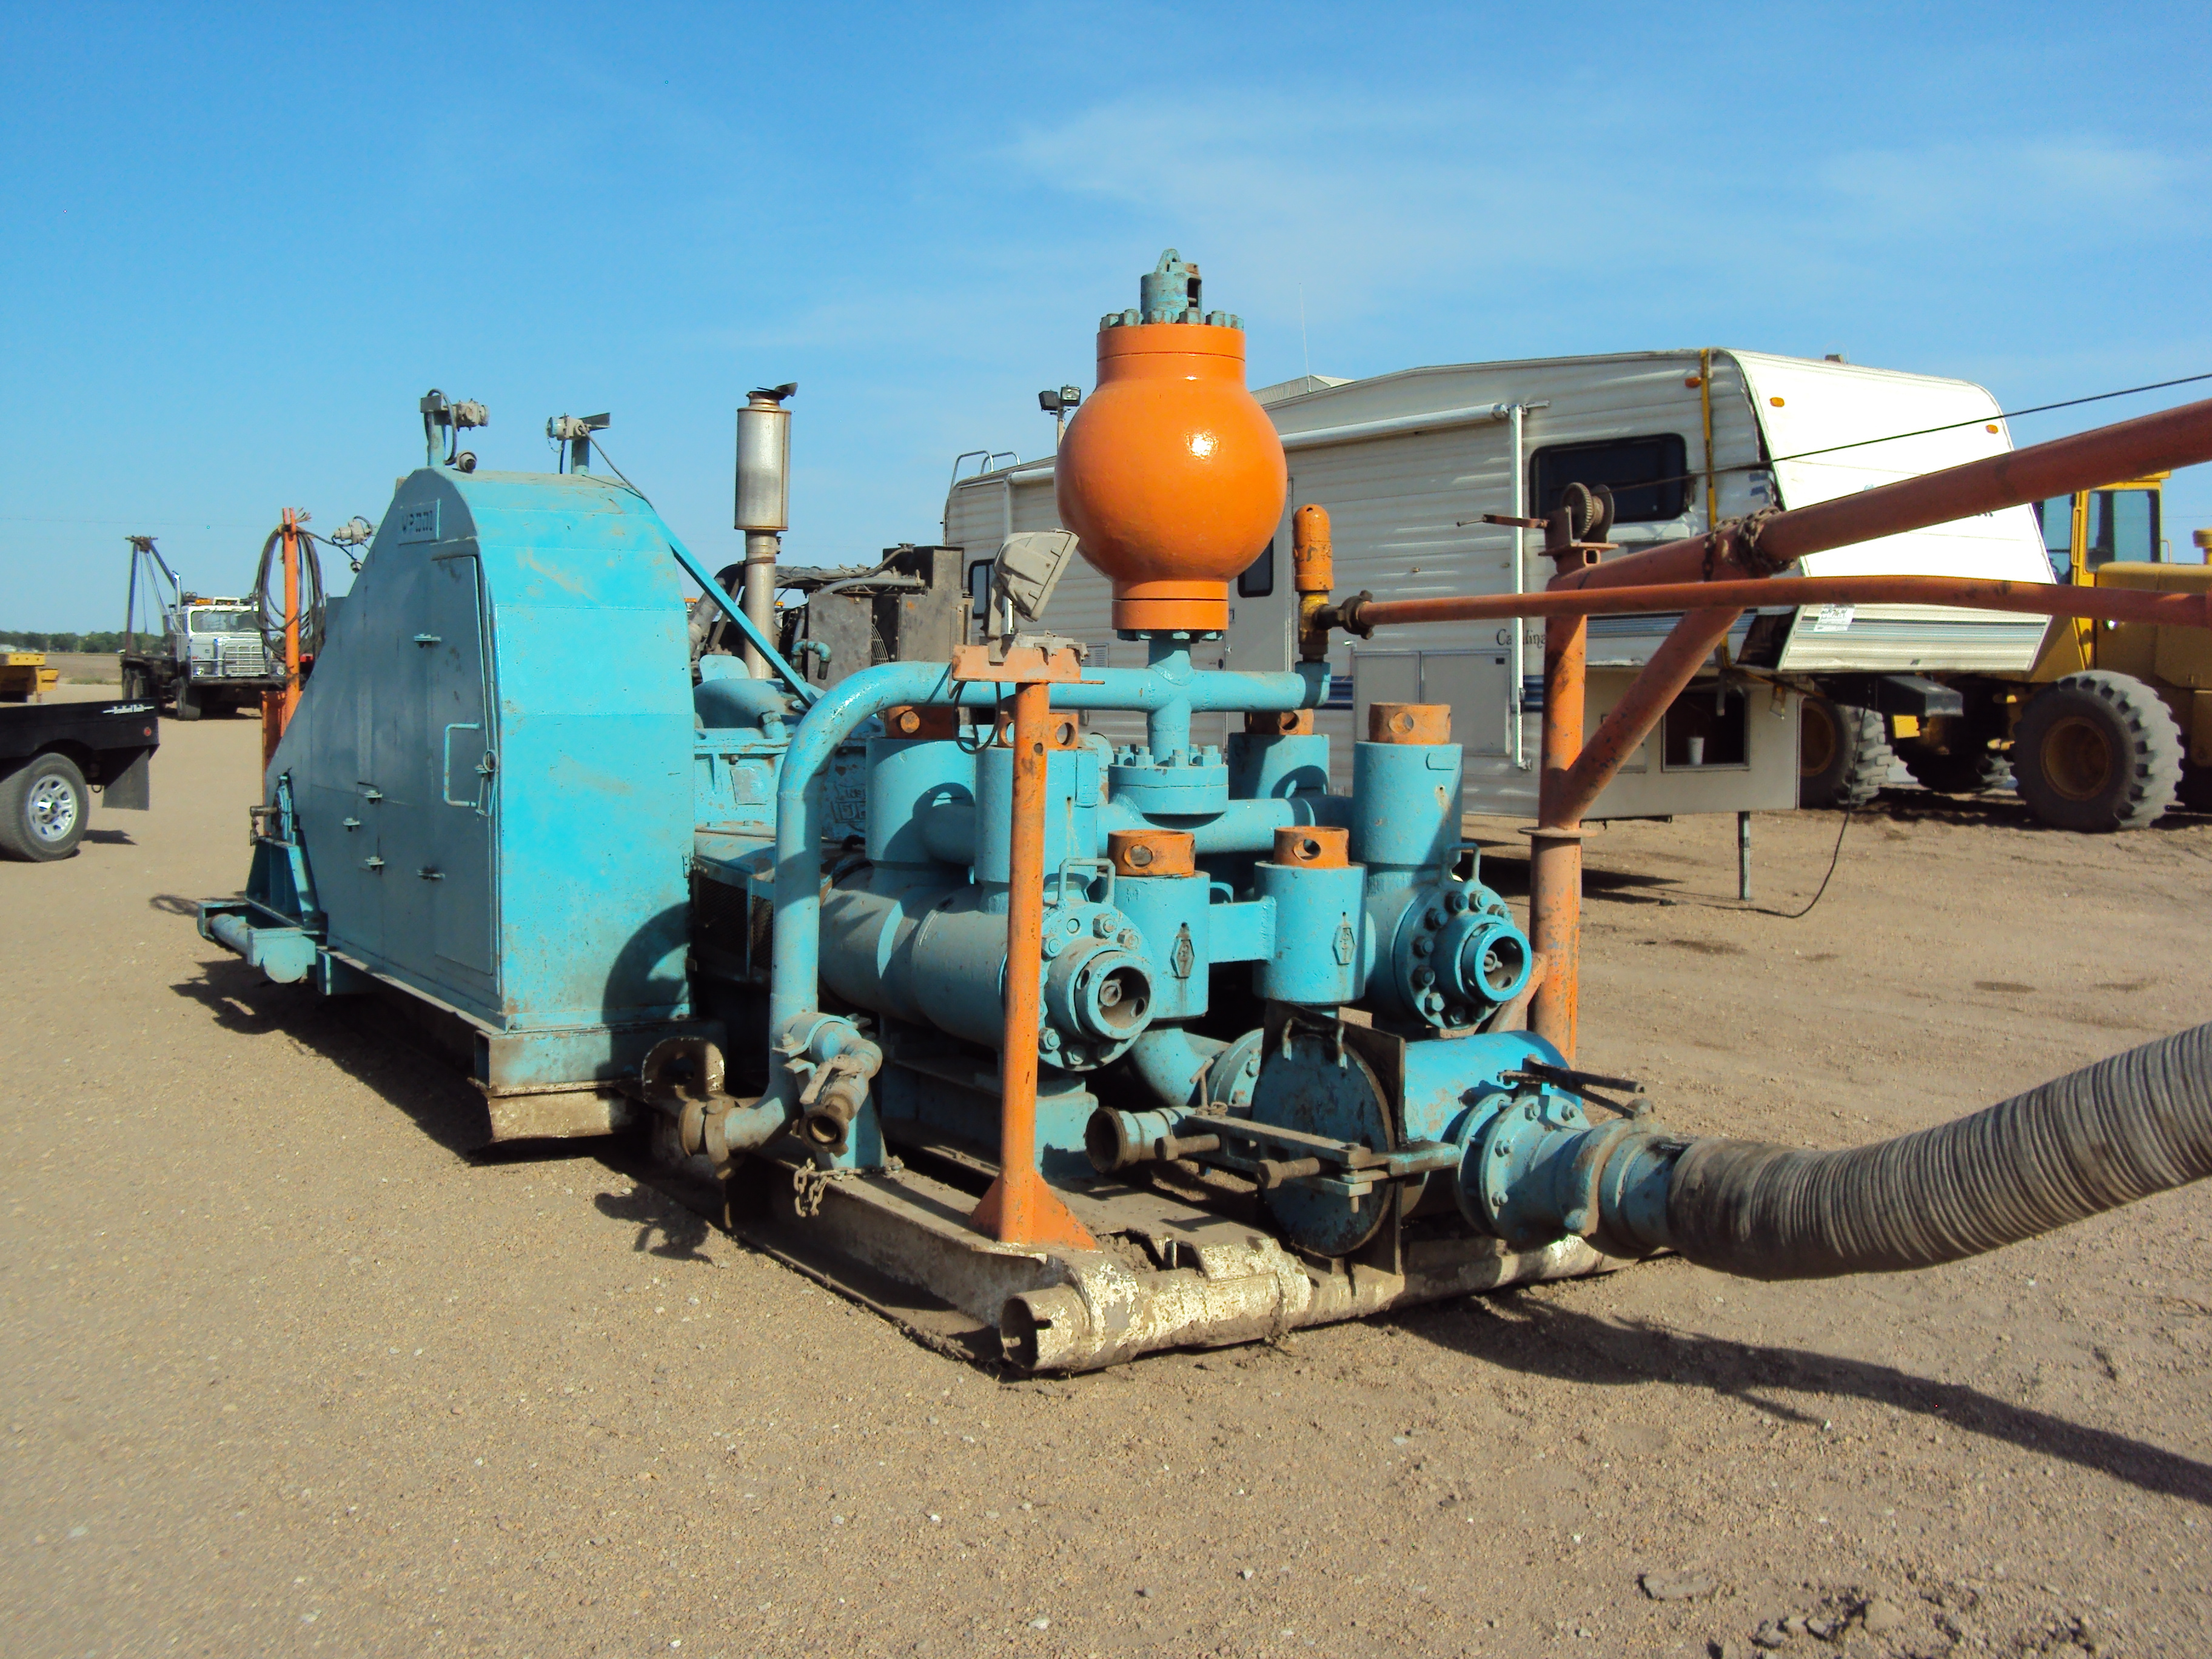 Drilling Company For Sale, Cooper Oil Rig Equipment For Sale